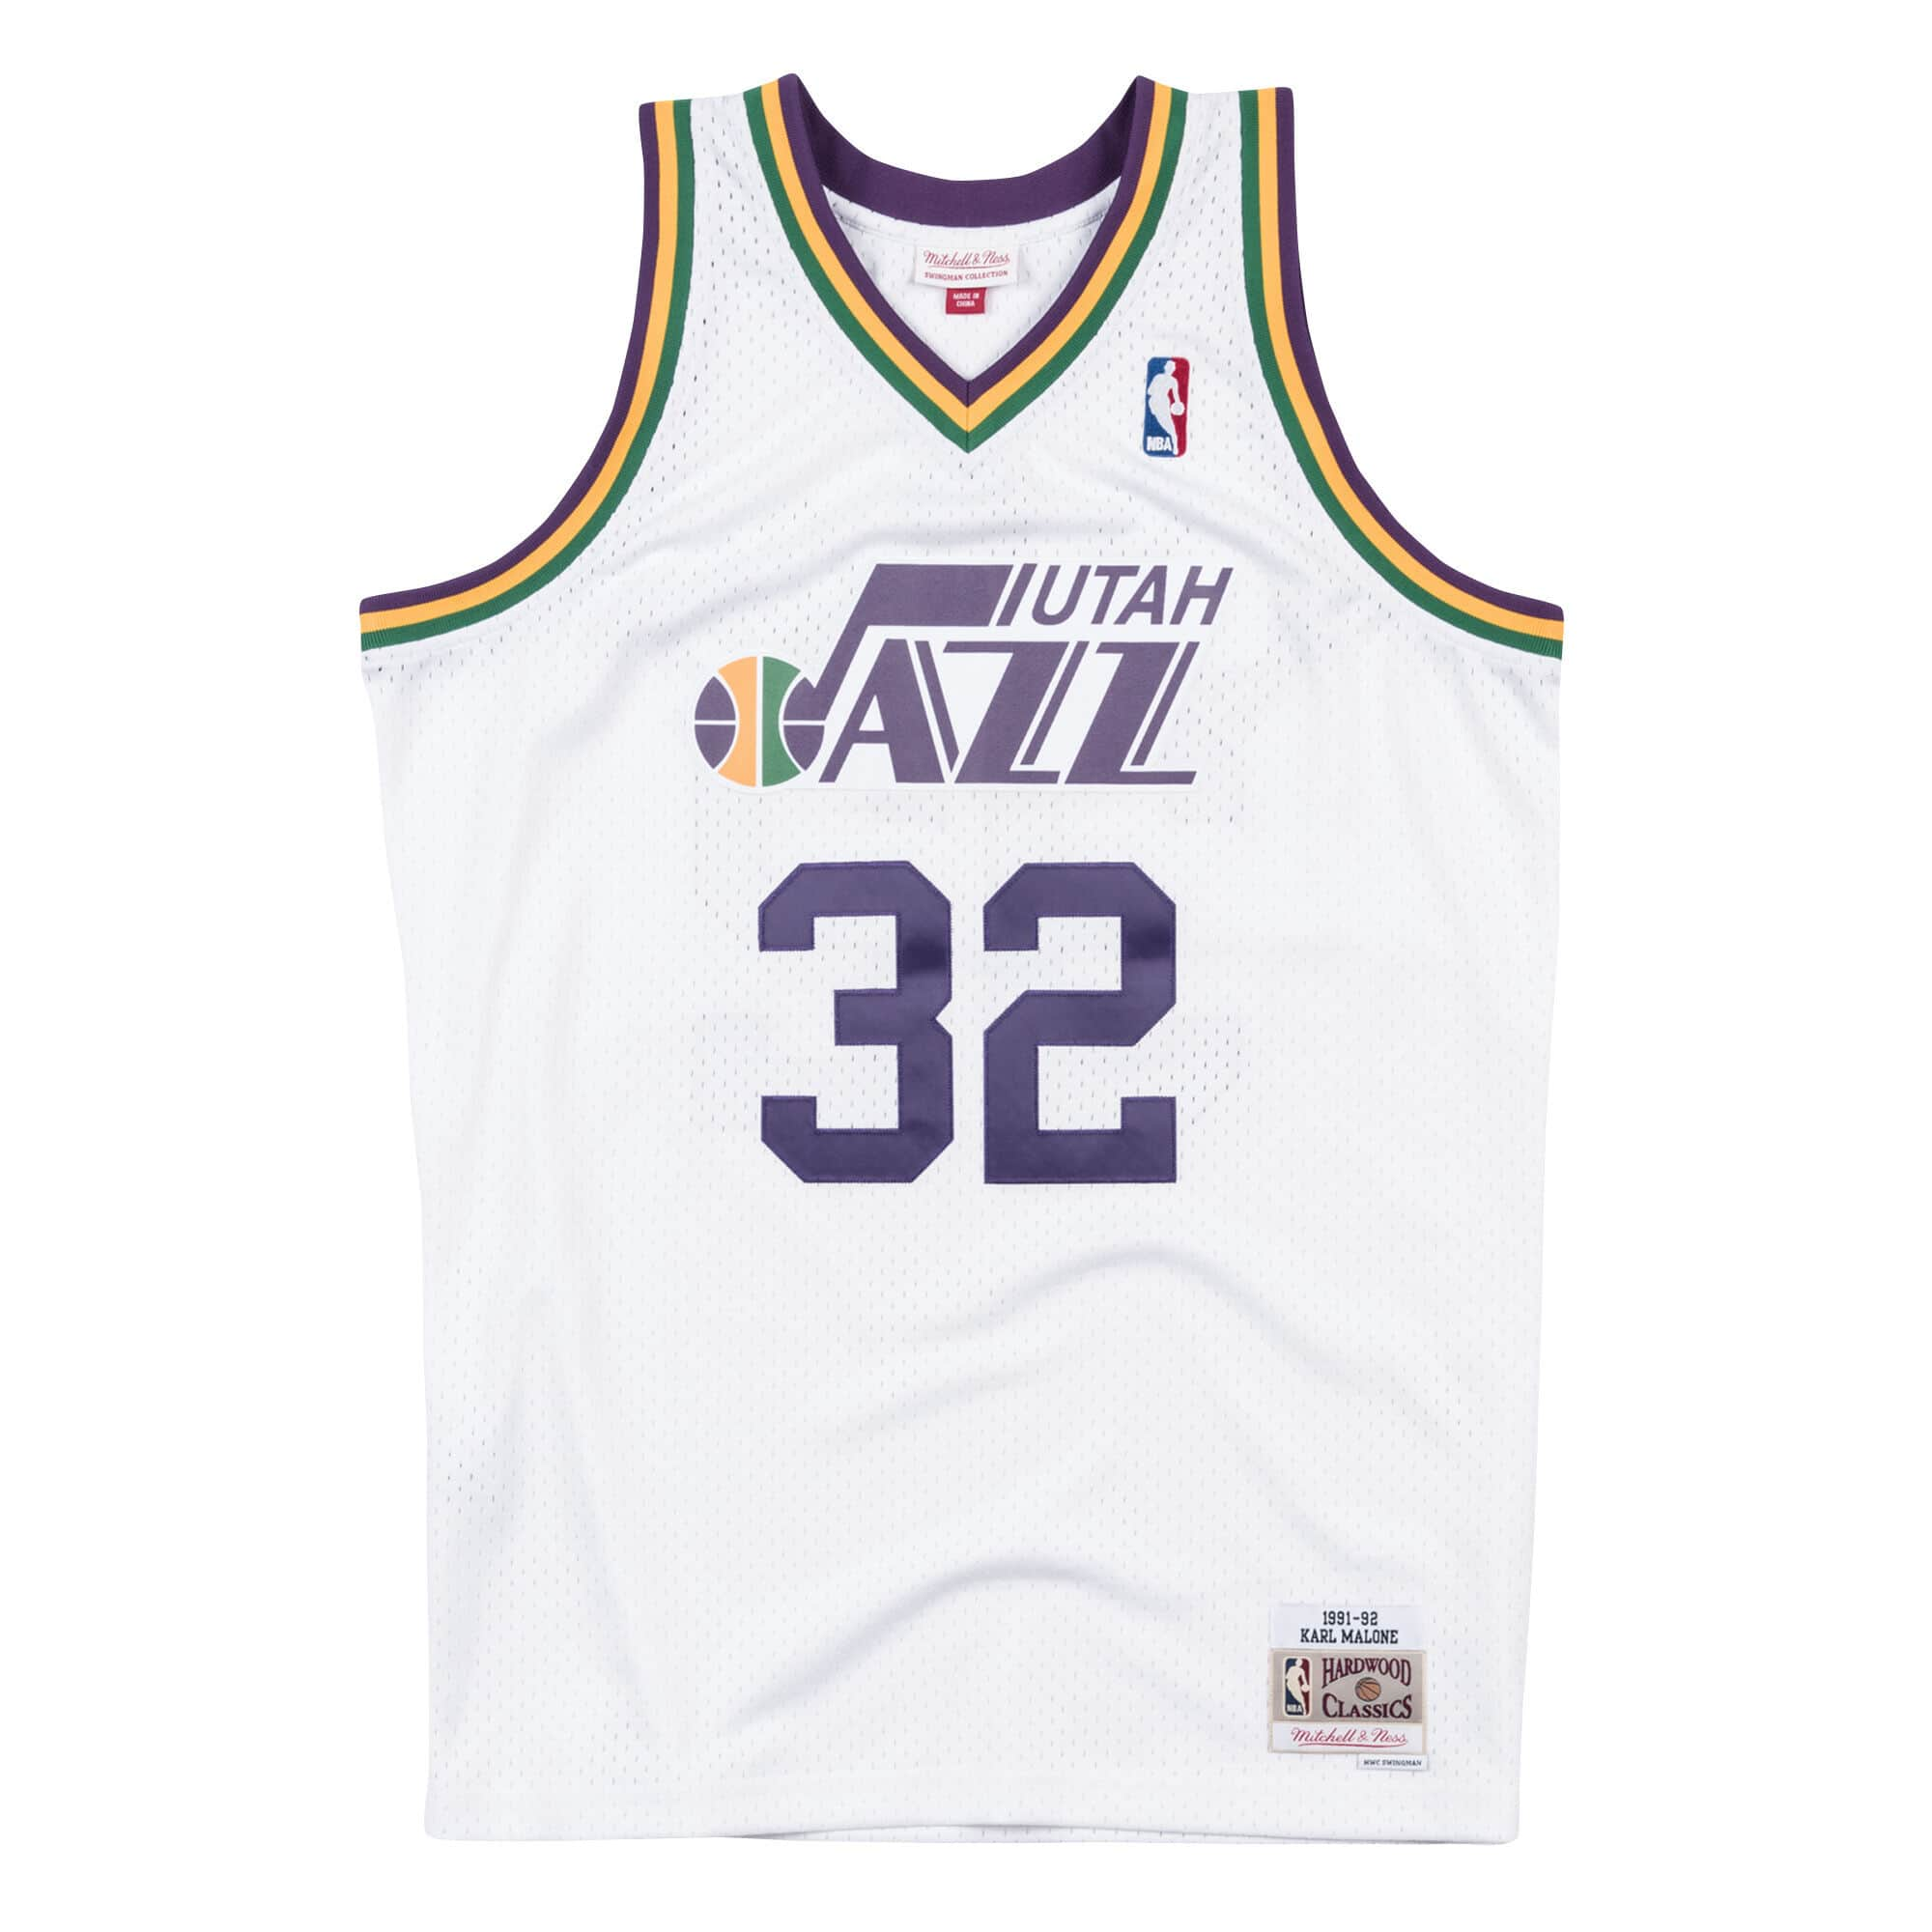 Swingman Jersey Utah Jazz Home 1991-92 Karl Malone